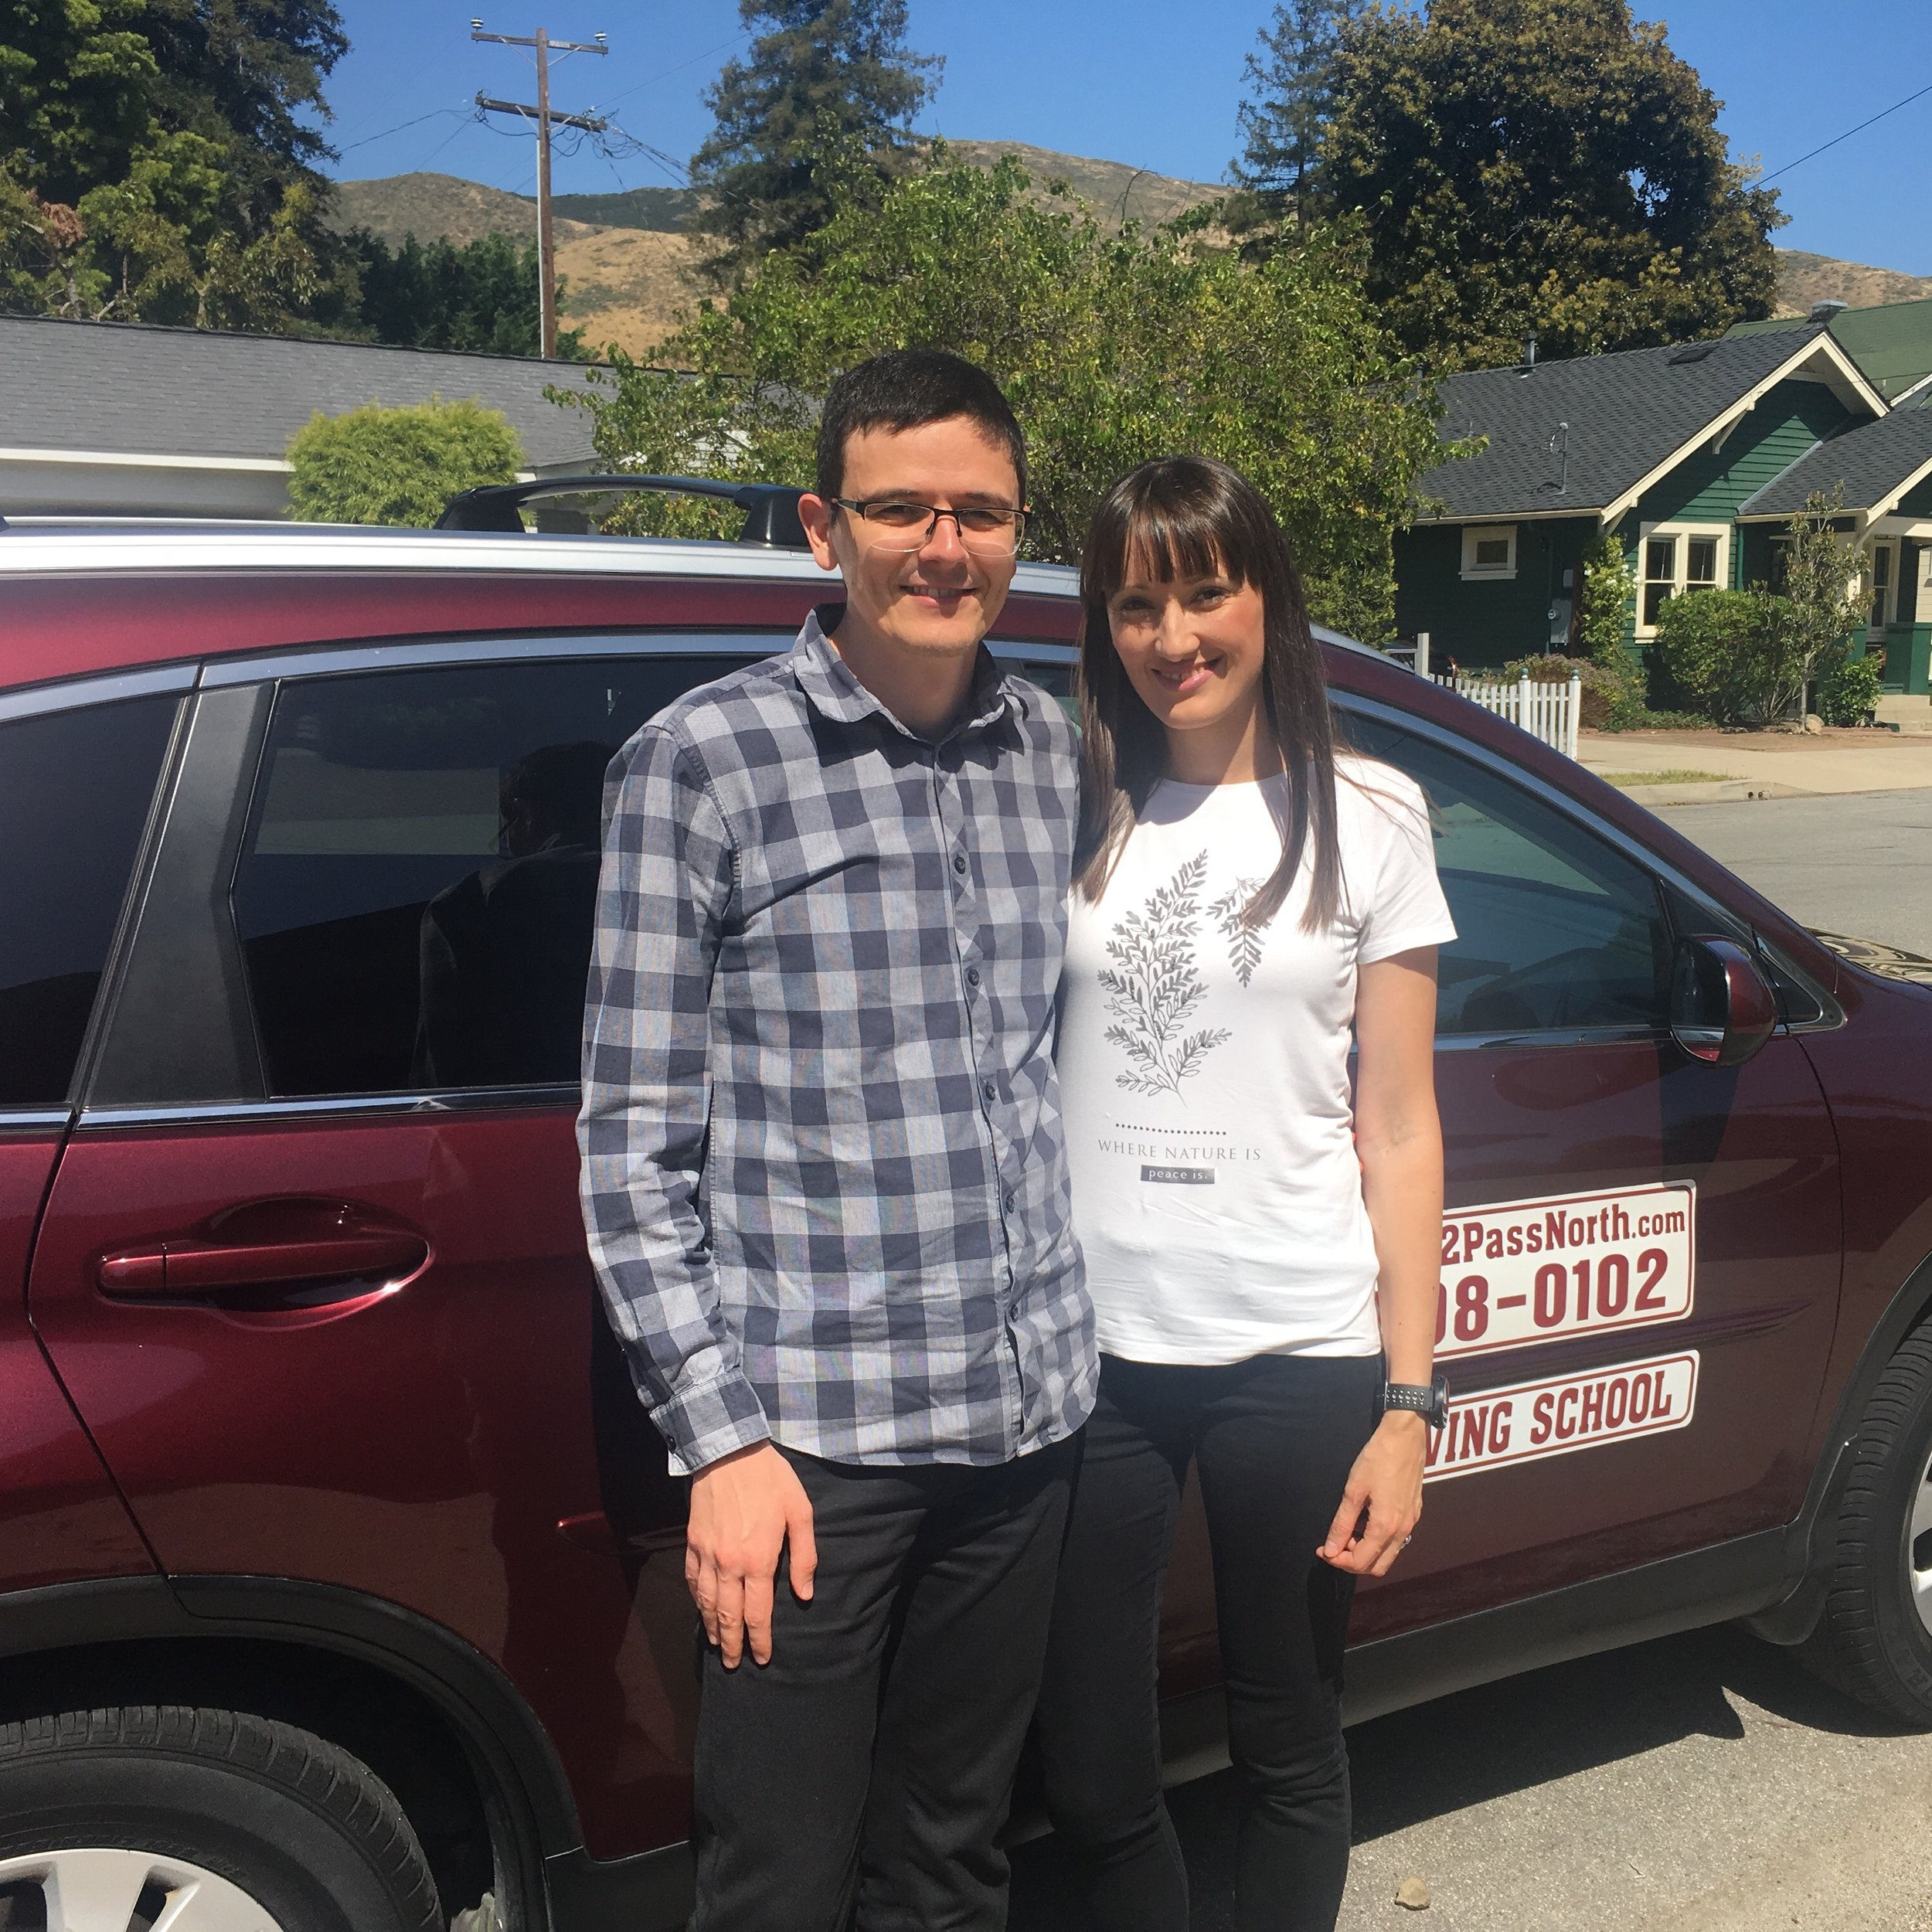 Licensed on the same day! - This lovely couple completed all of their lessons individually and then took/passed their driver's tests on the same day!